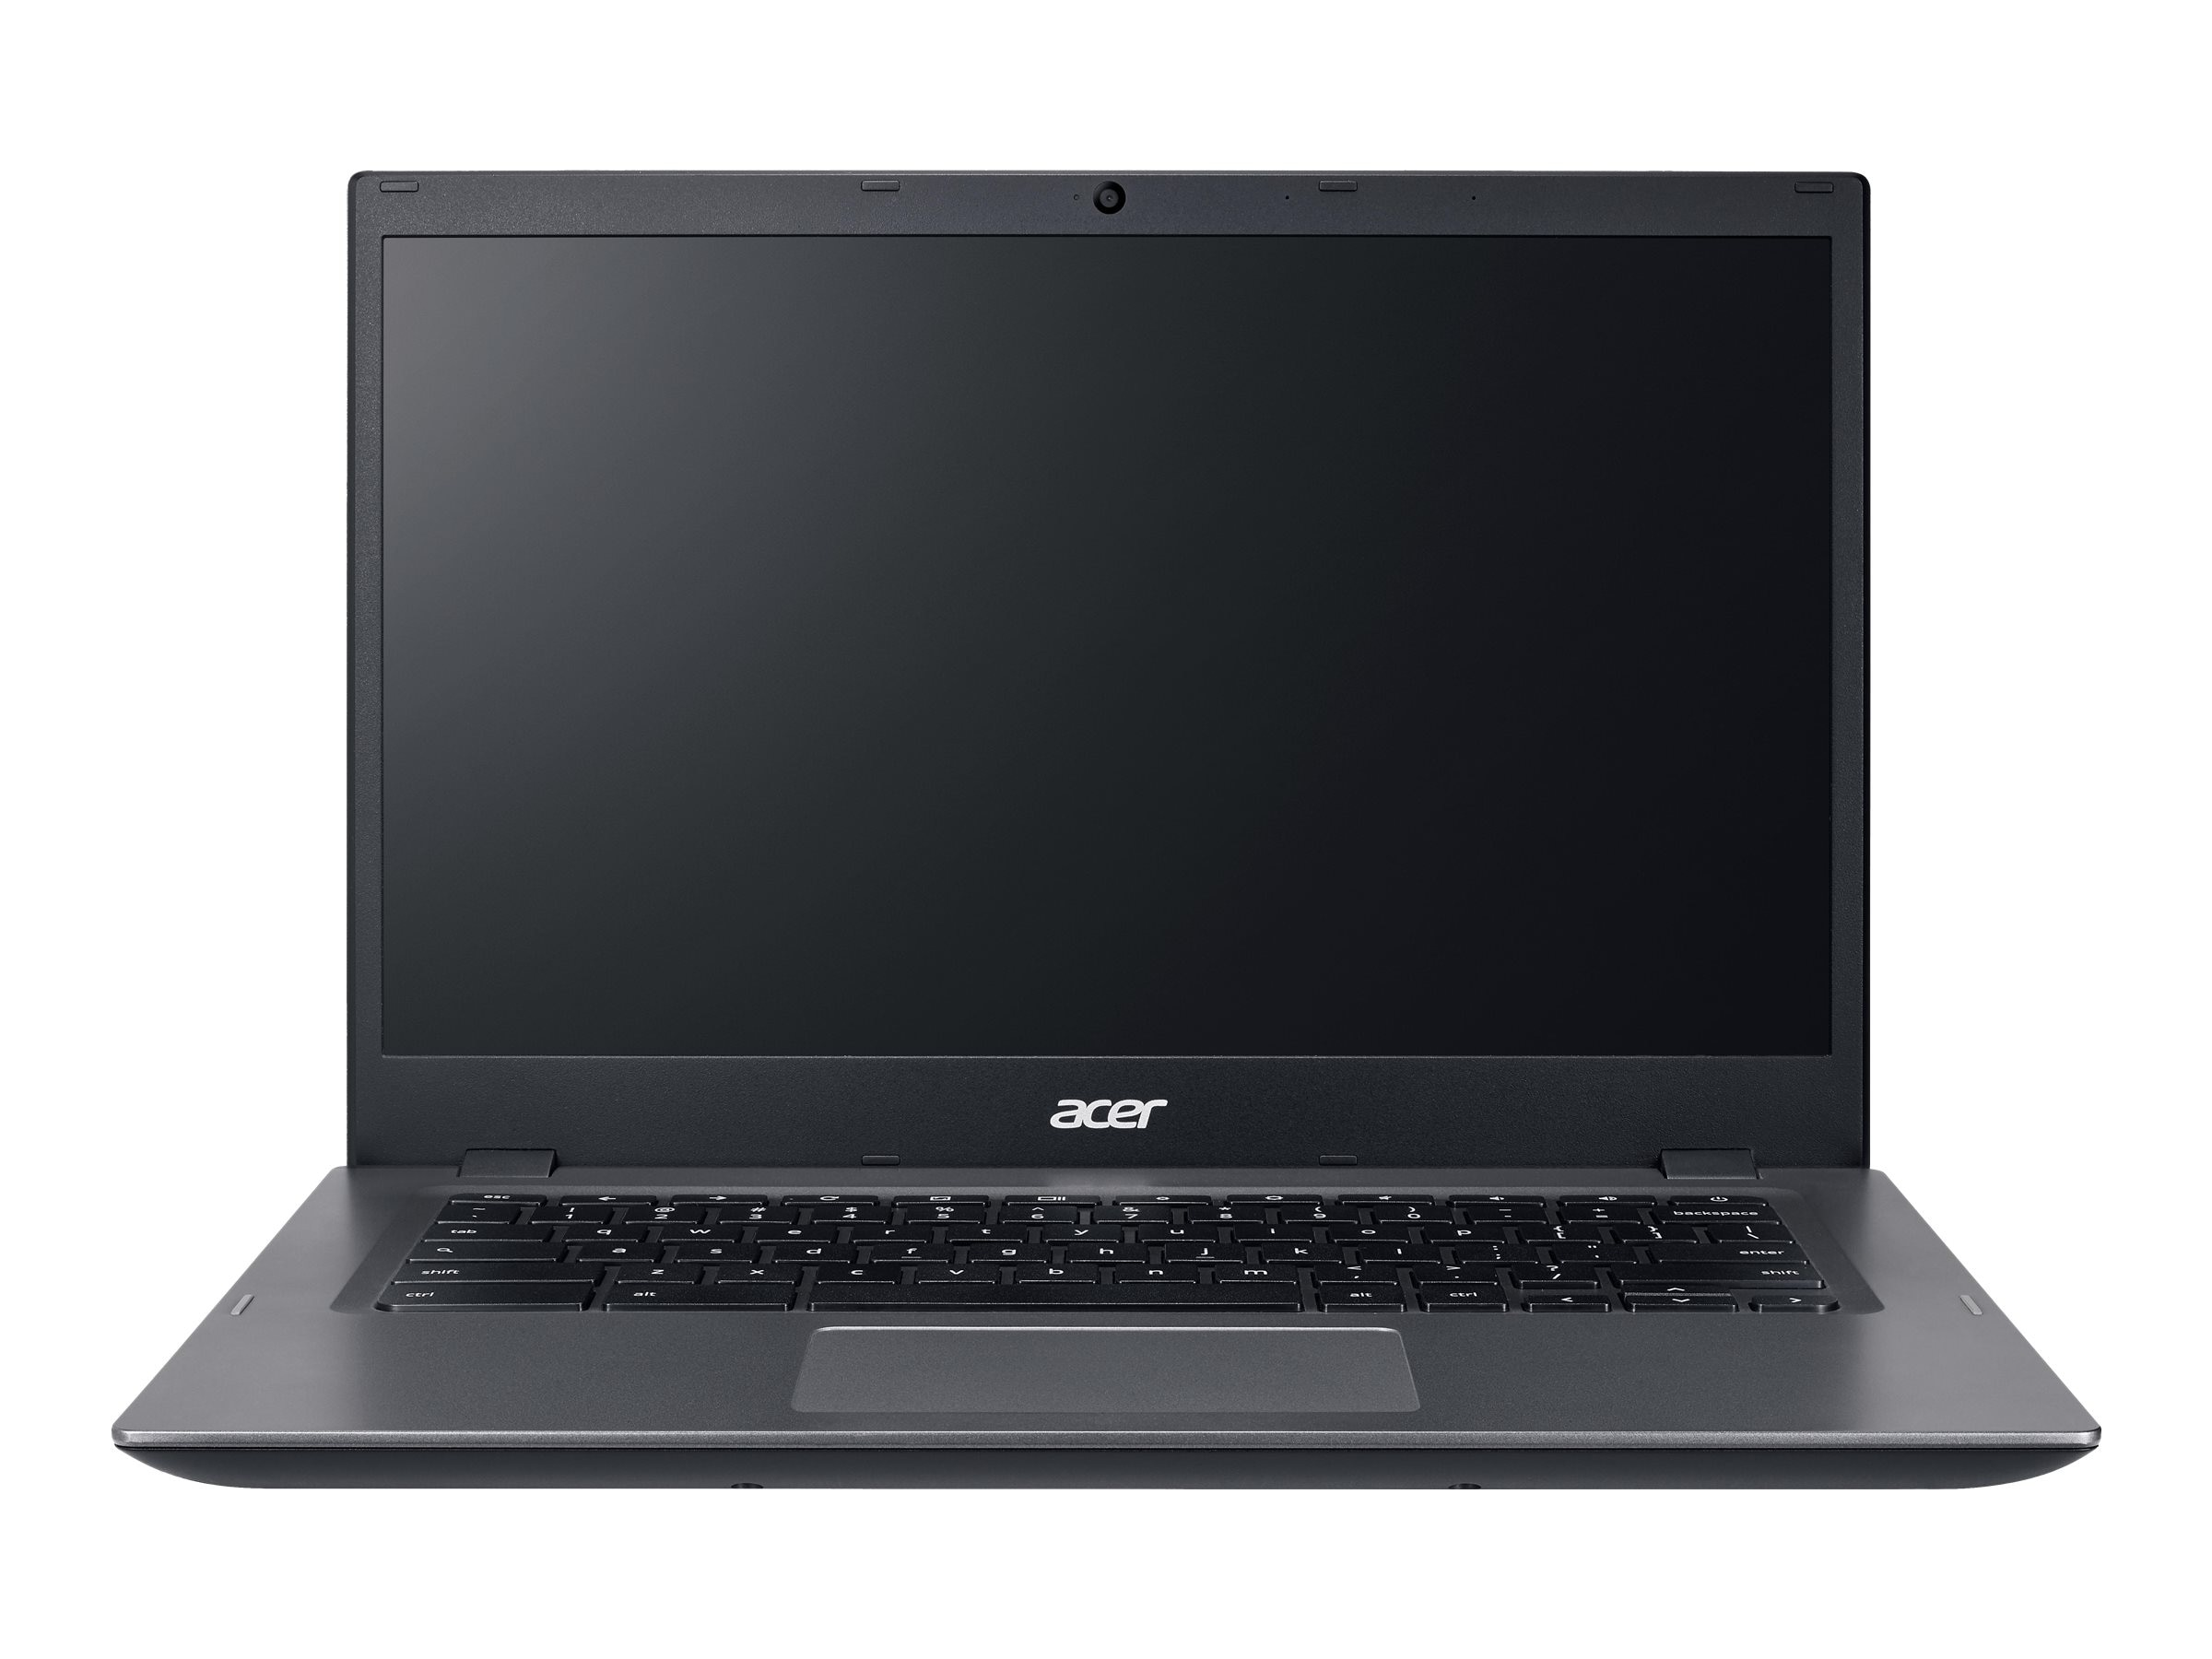 Acer Chromebook 14 CP5-471-581N 2.3GHz Core i5 14in display, NX.GE8AA.003